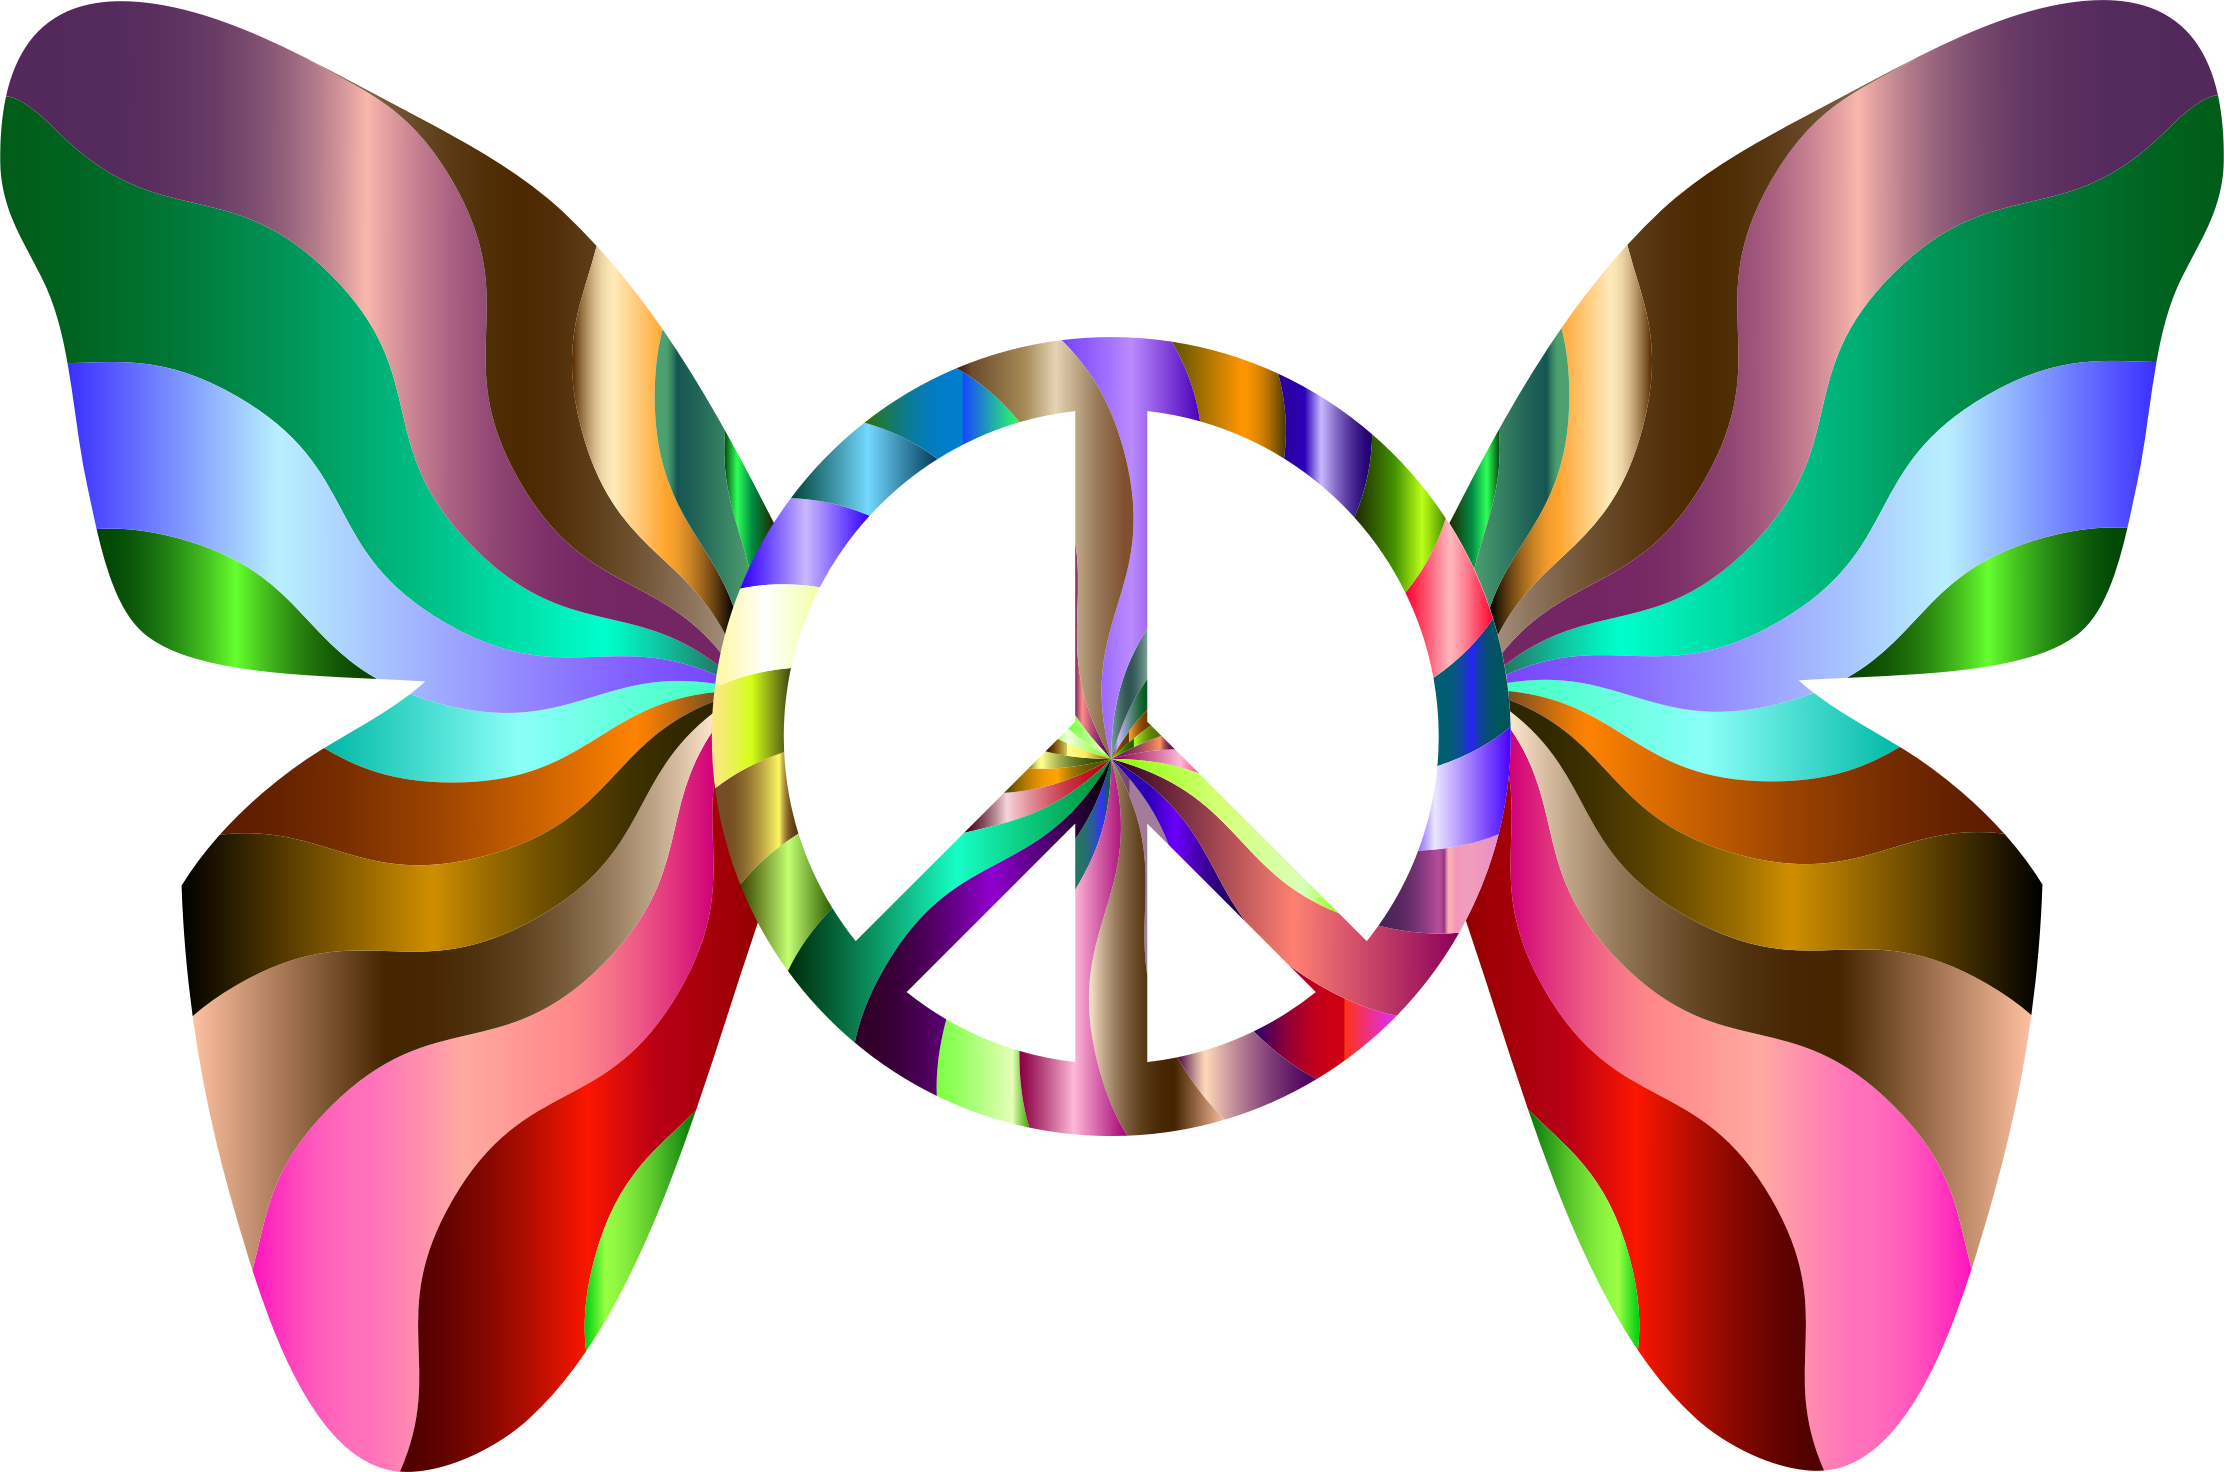 Groovy Peace Sign Butterfly 8 by GDJ